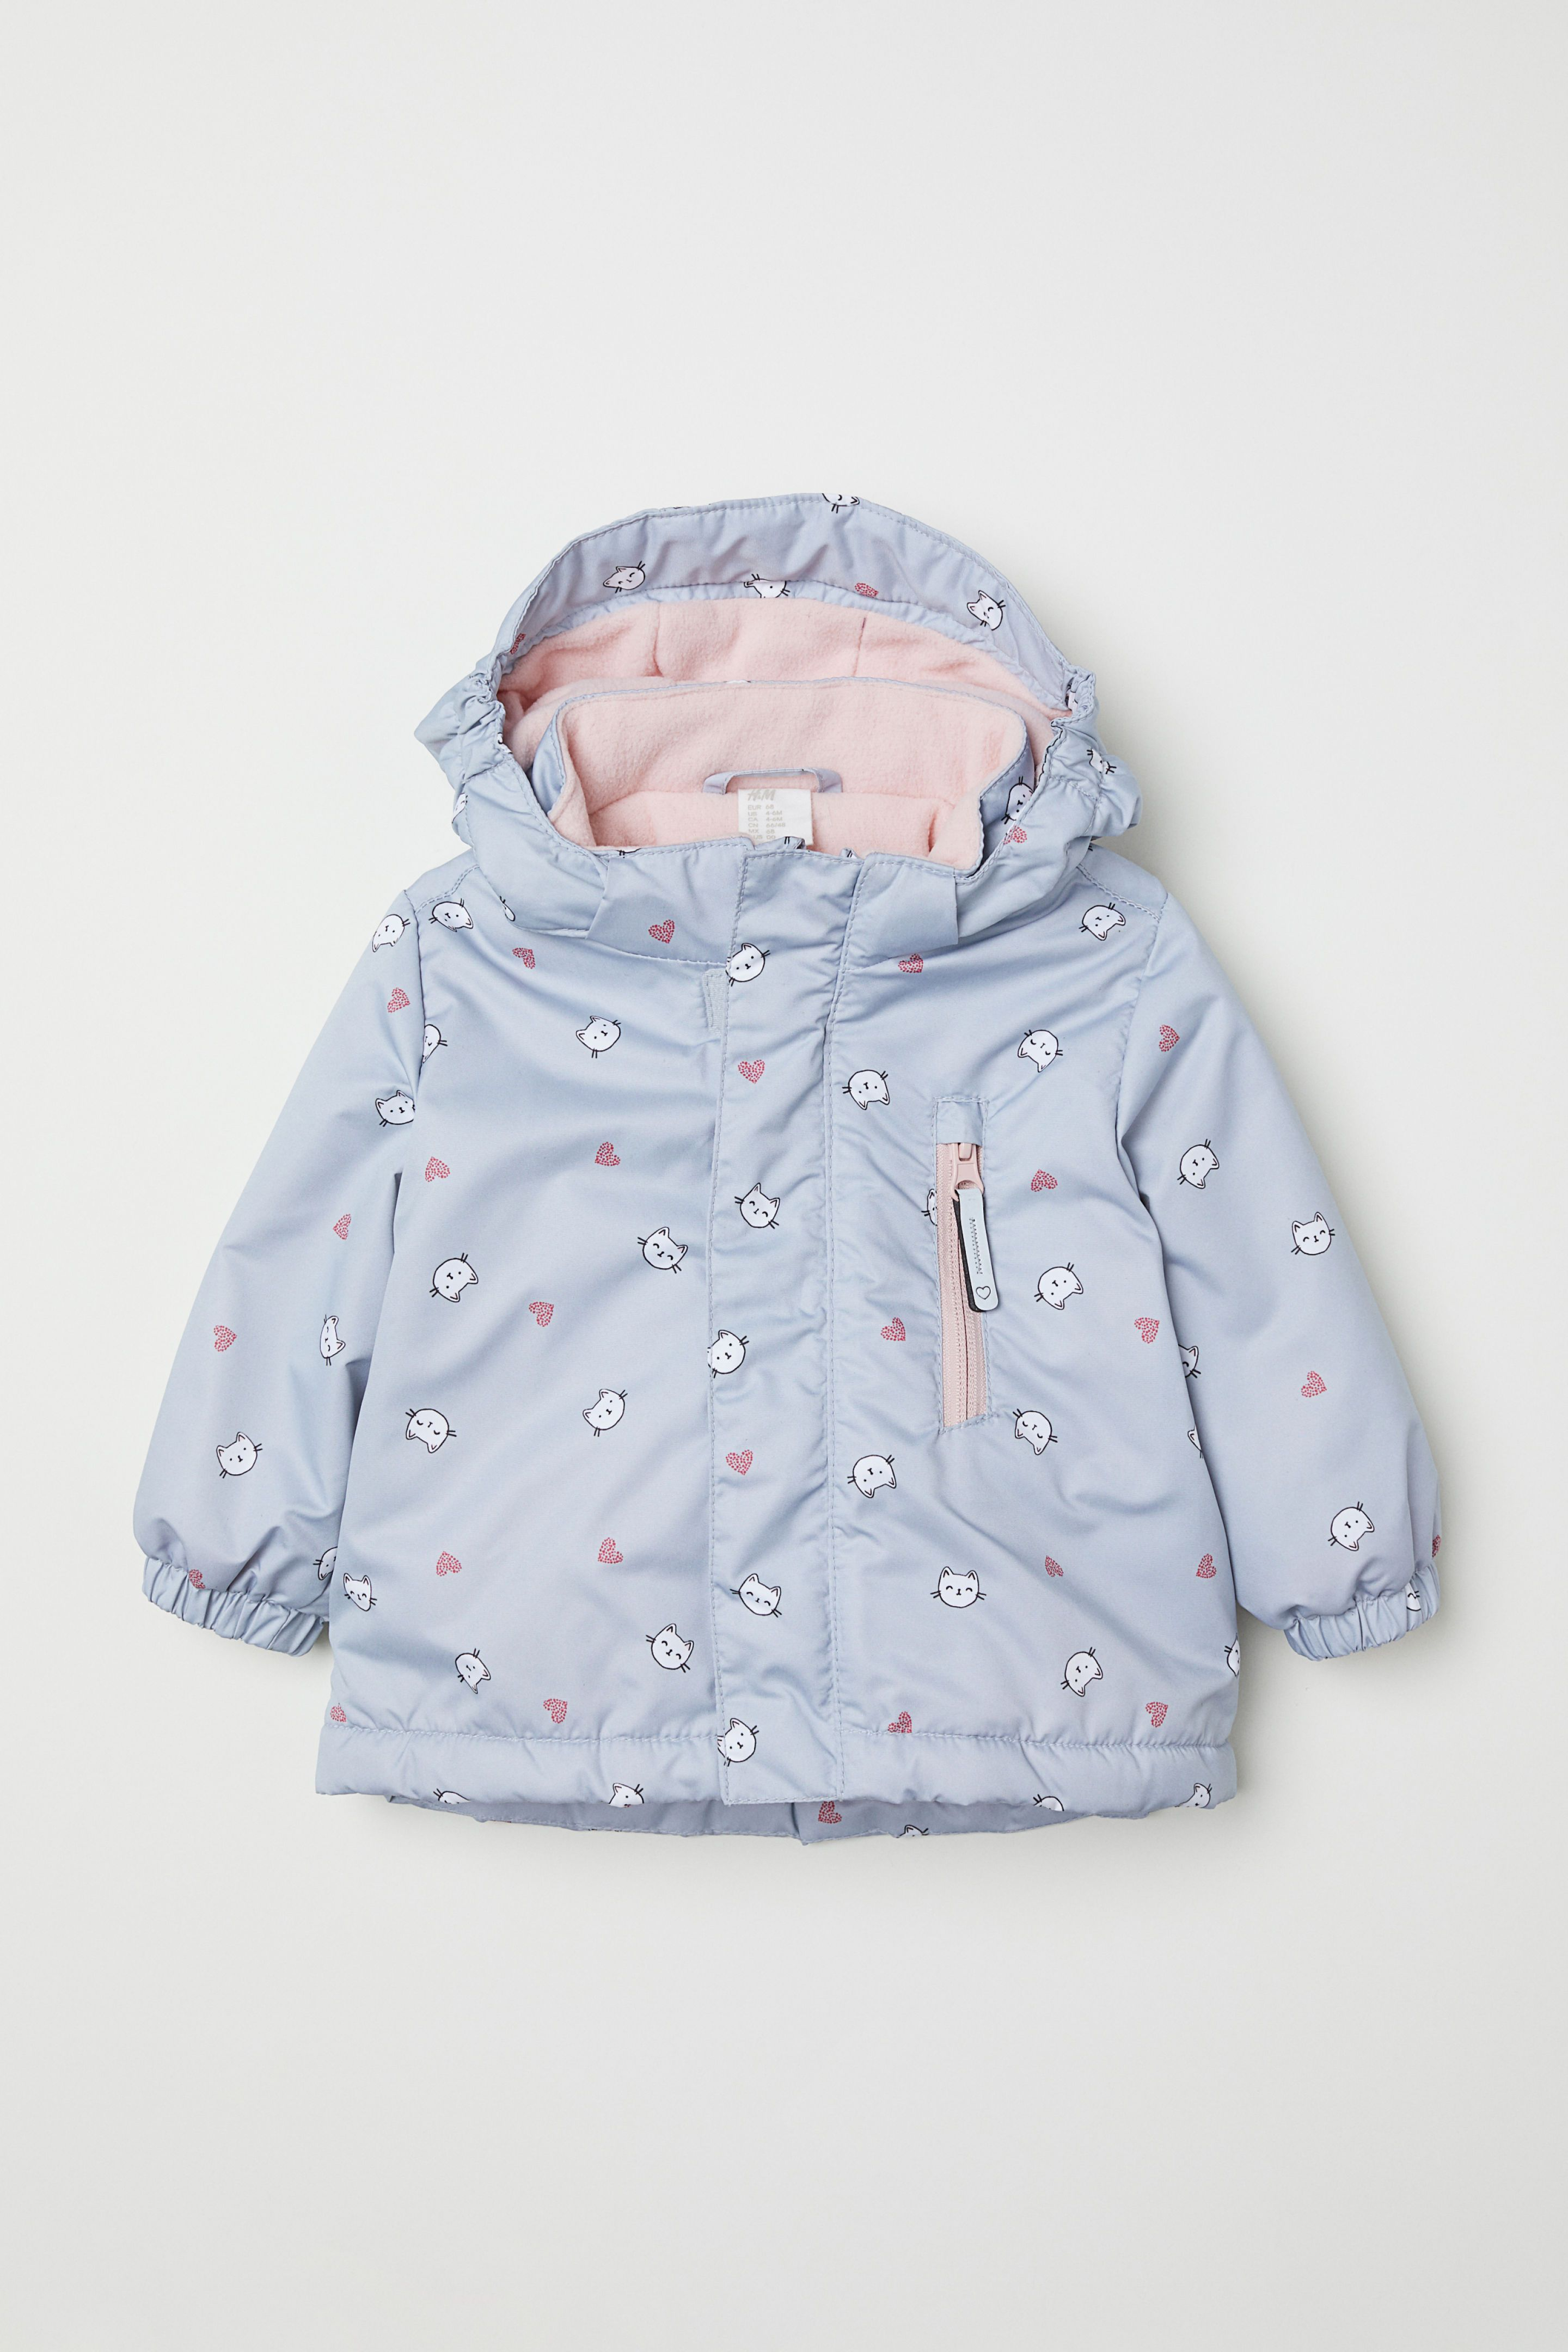 ef61c3dff0ee H M Padded Outdoor Jacket - Pink in 2019